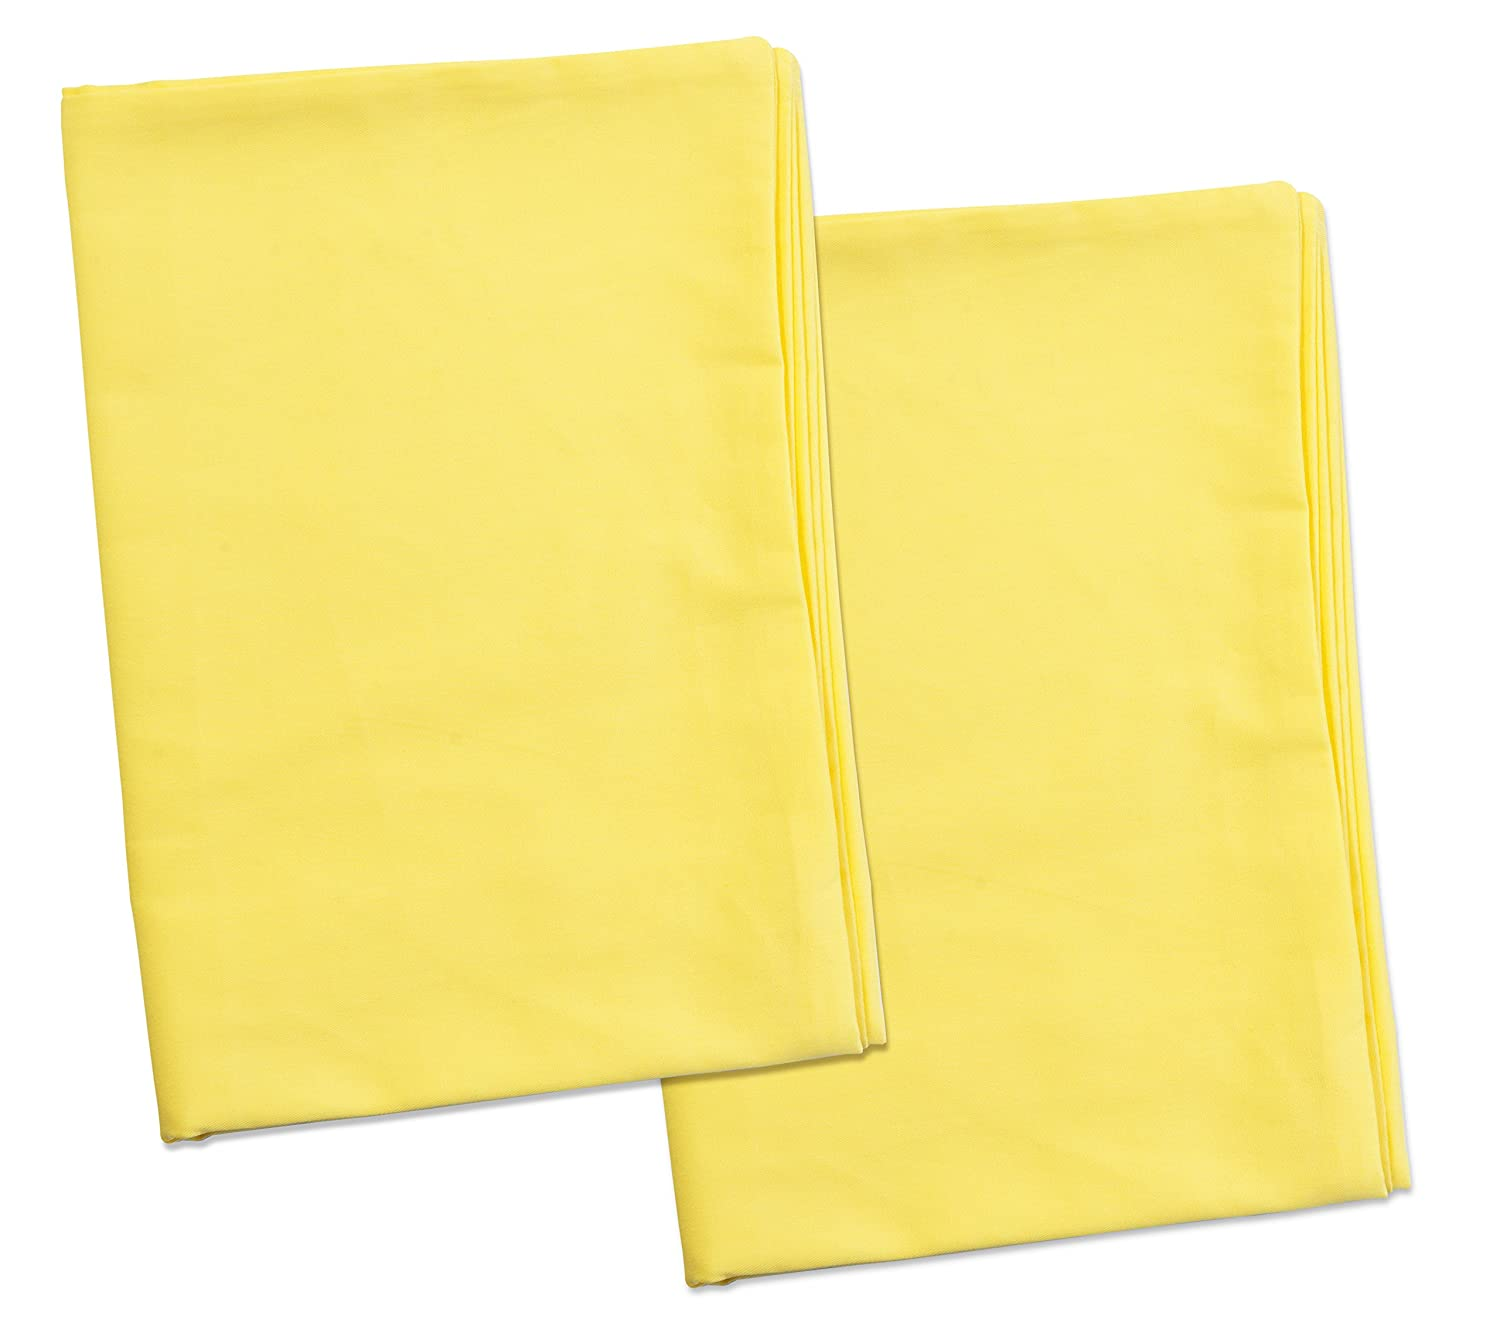 2 Yellow Toddler Pillowcases - Envelope Style - For Pillows Sized 13x18 and 14x19 - 100% Cotton With Percale Weave - Machine Washable - ZadisonJaxx ZacharyPaul Collection - 2 Pack Zadisonjaxx Pillow ZJTPC-ZPC-YP2P